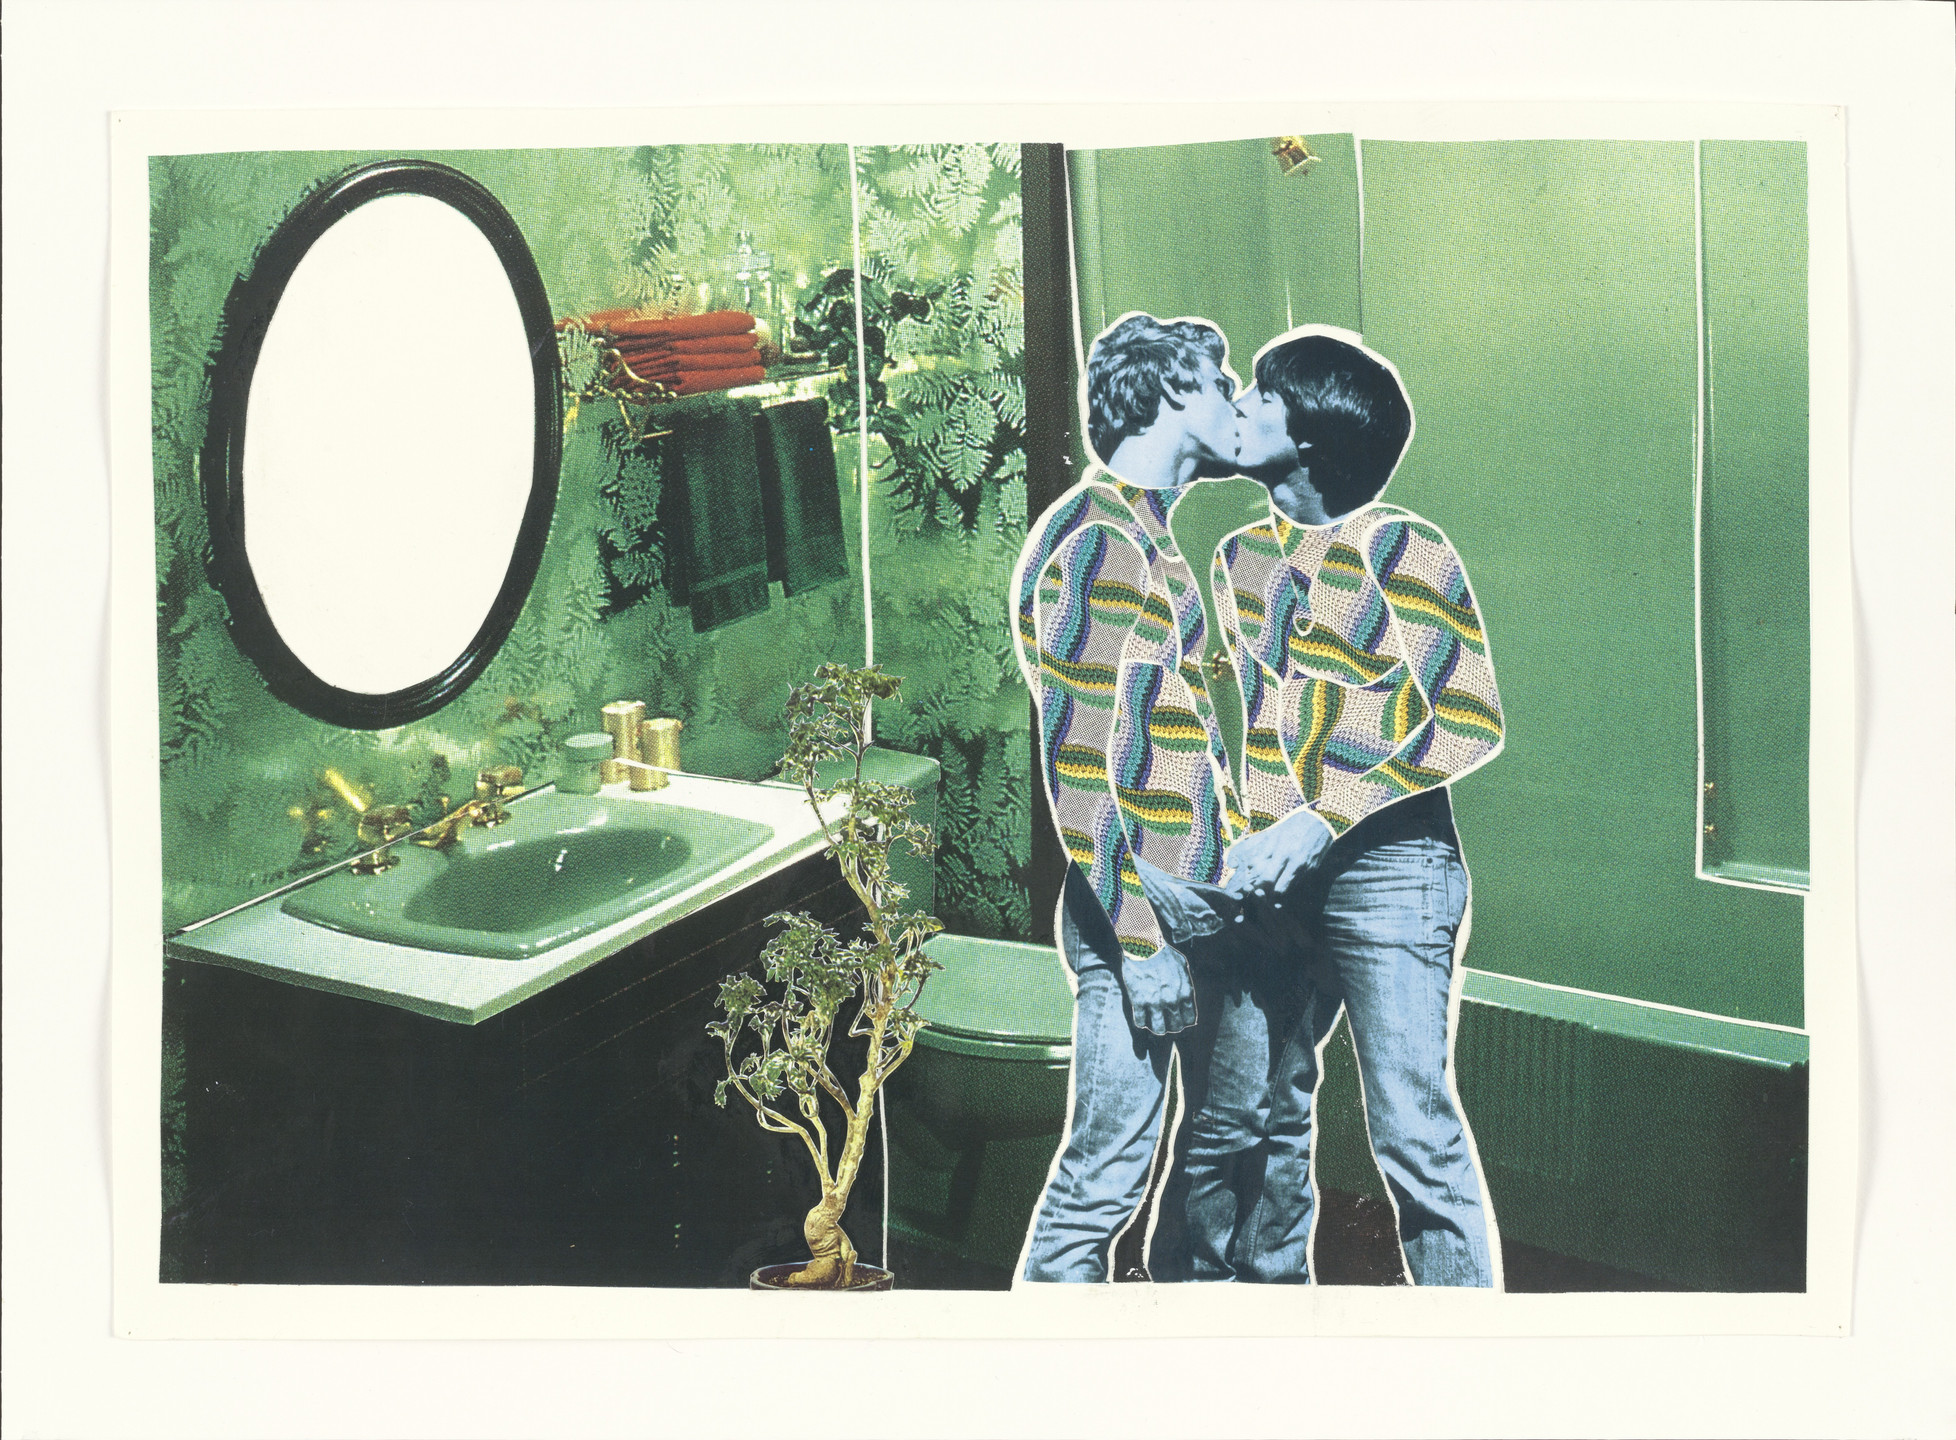 Christian Holstad. Kissing Couple in Jean Pants and Green Bathroom. 2003